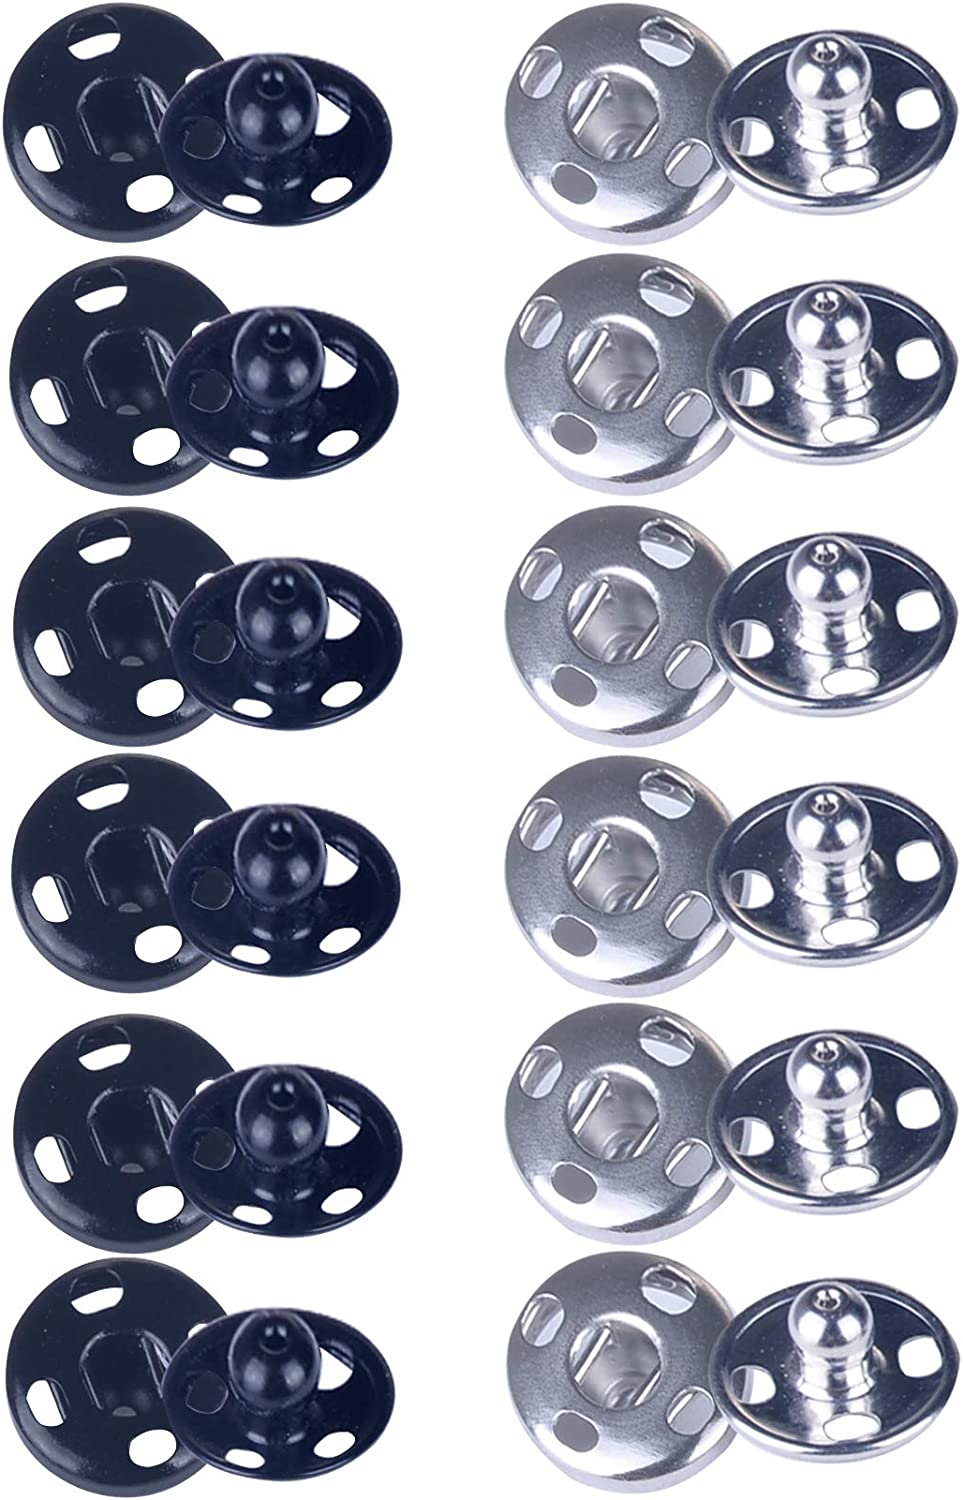 Meikeer 100 Sets Sew-on Snap Buttons Brass Snap Fastener Buttons Press Button Sew on Press Studs for Sewing Clothing Silvery and Black(10mm)